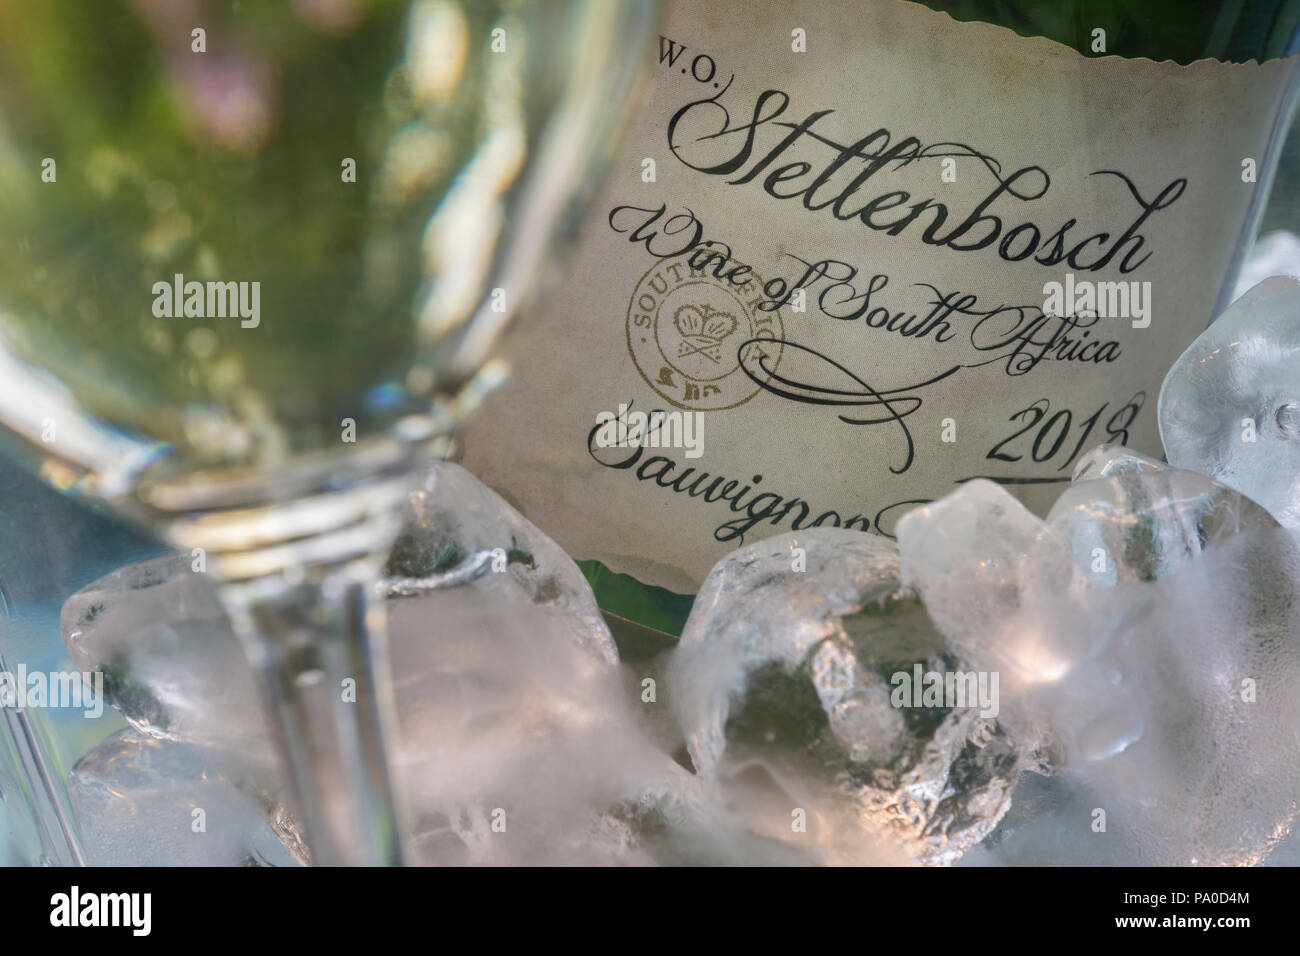 Stellenbosch South Africa white wine Sauvignon Blanc bottle in ice cooler with wine glass in sunny alfresco garden situation - Stock Image